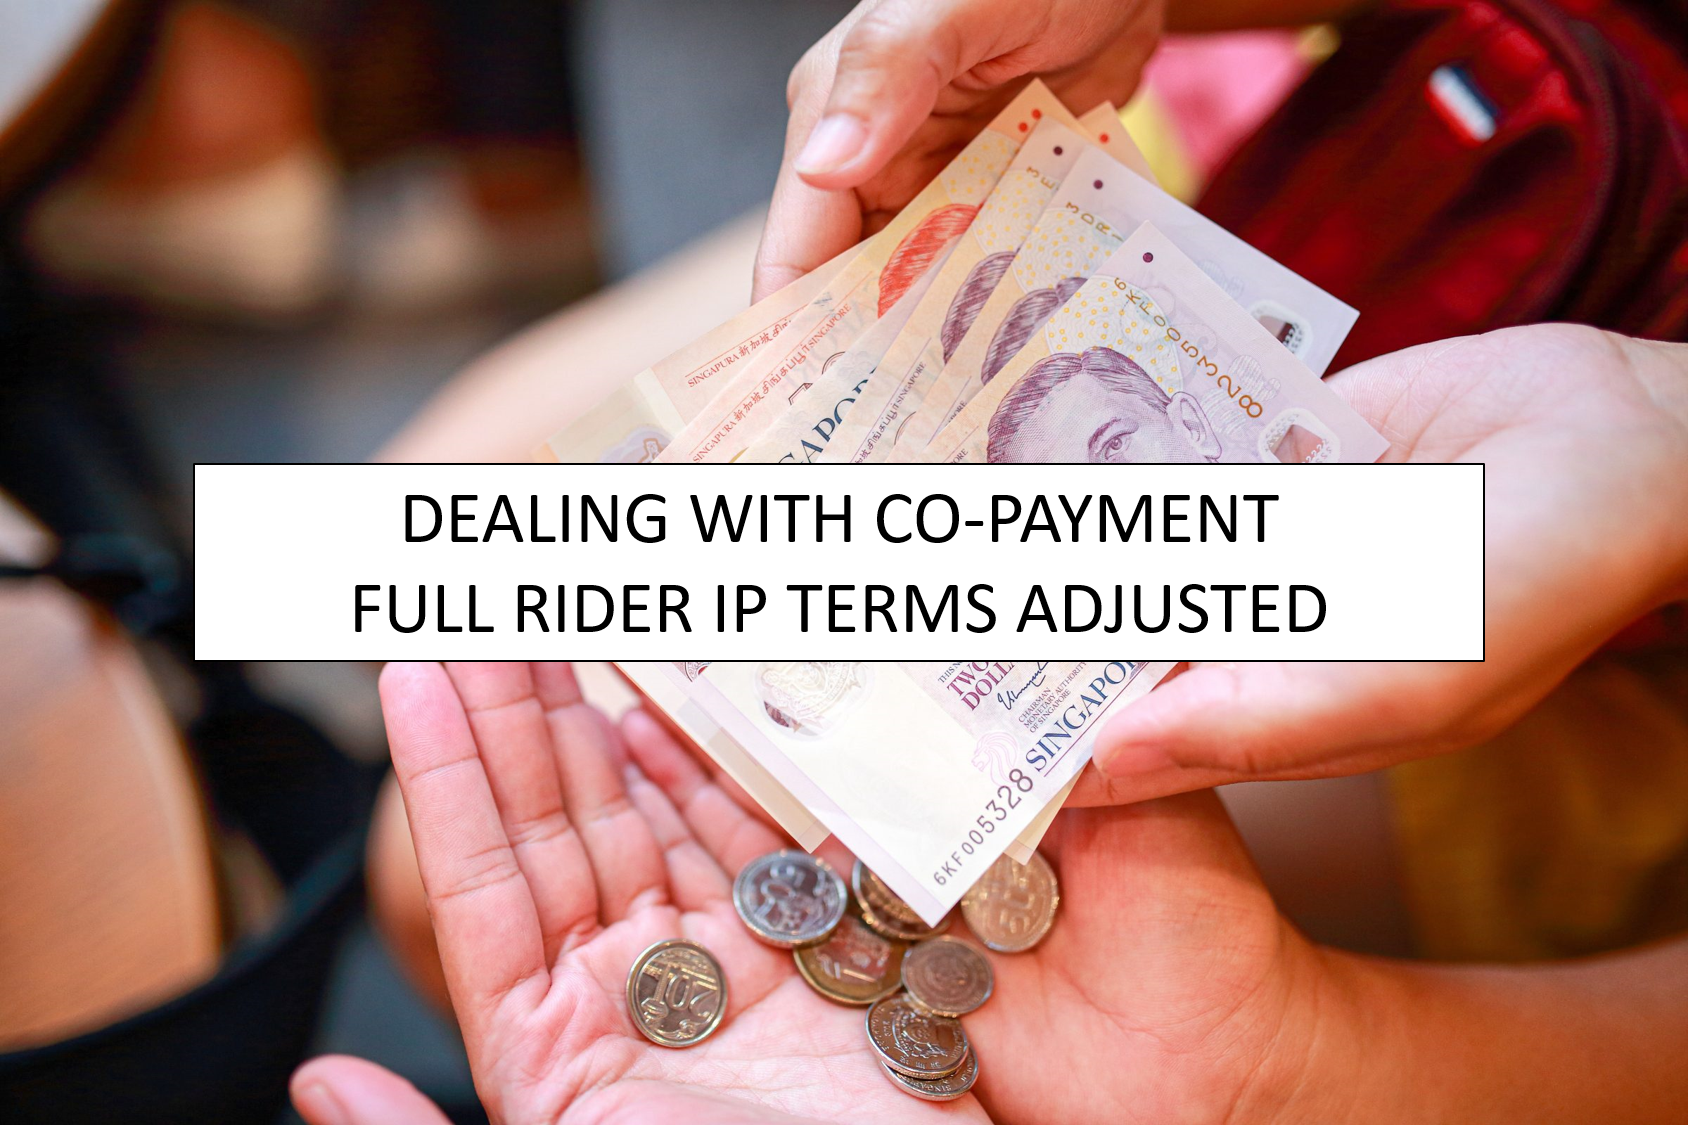 Planning for Medical Expenses After Changes In Full-Rider IP Copayment